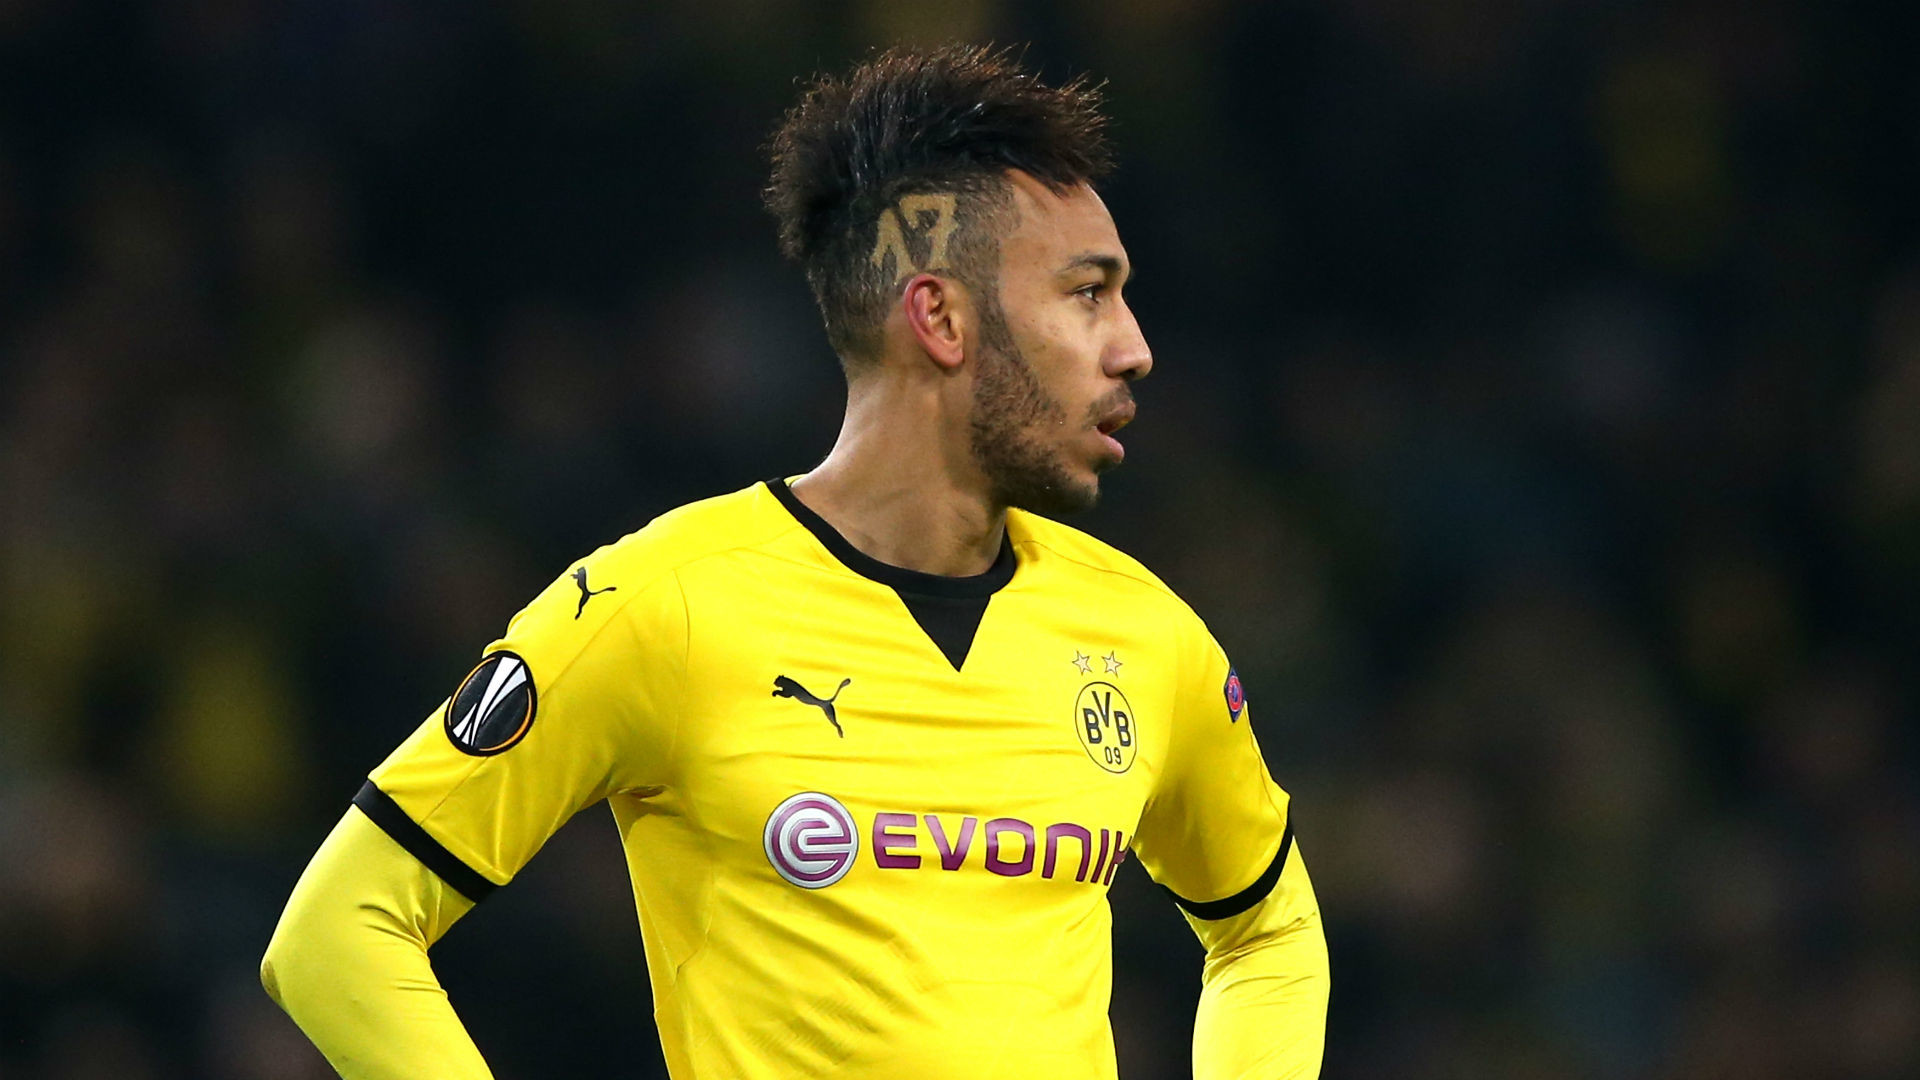 Aubameyang Picture: Pierre Emerick Aubameyang Wallpapers (89+ Images